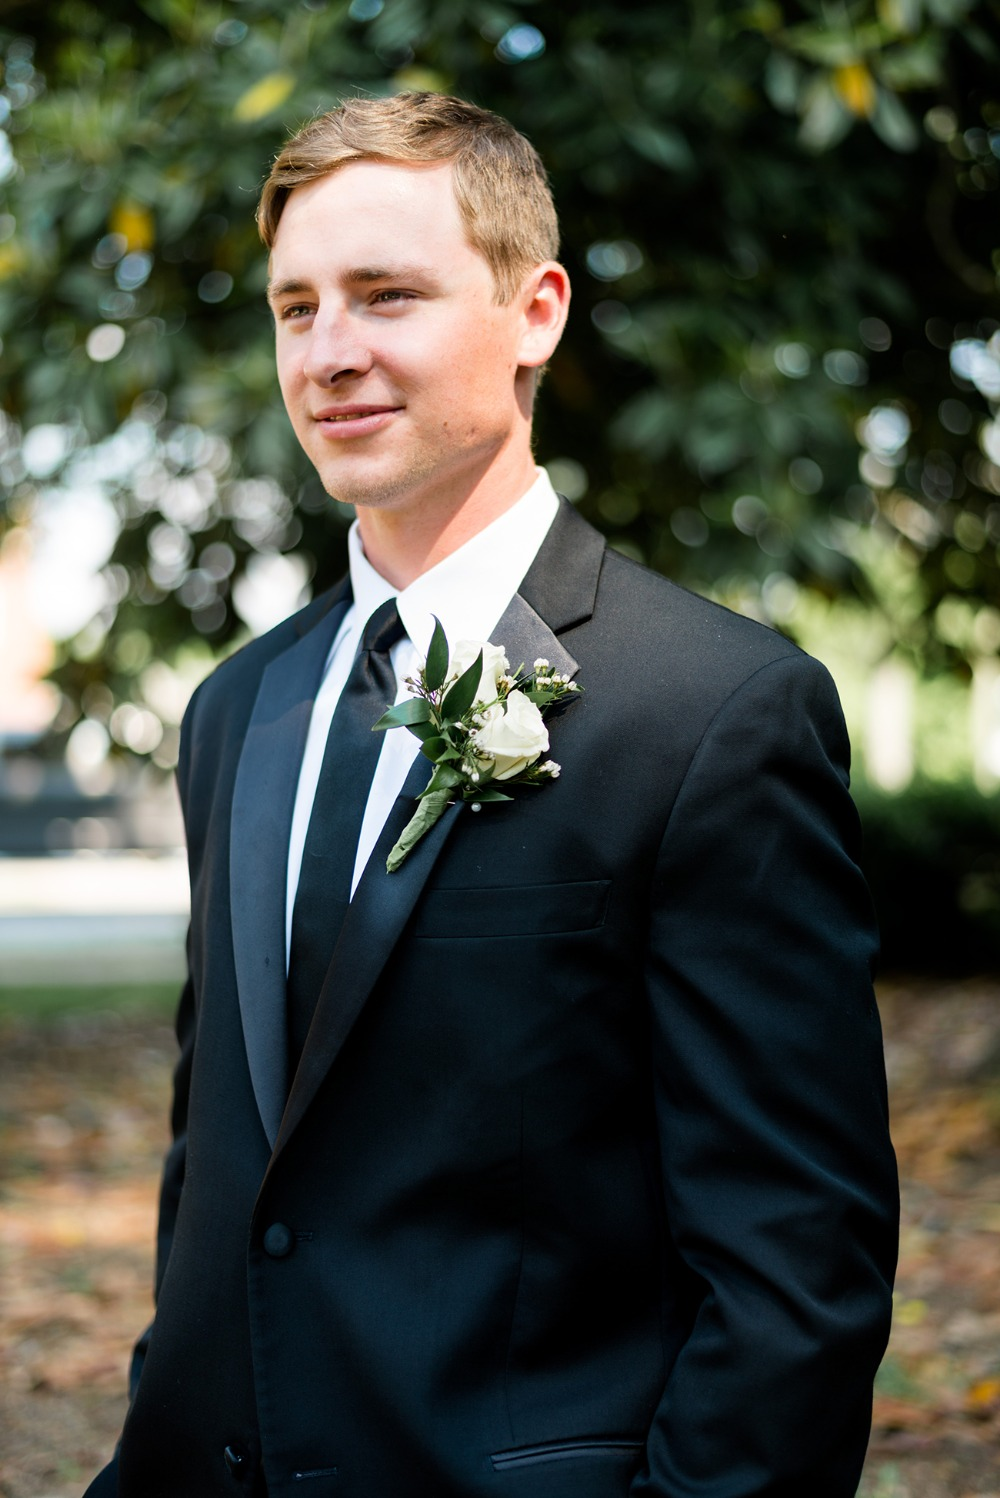 groom in classic black suit